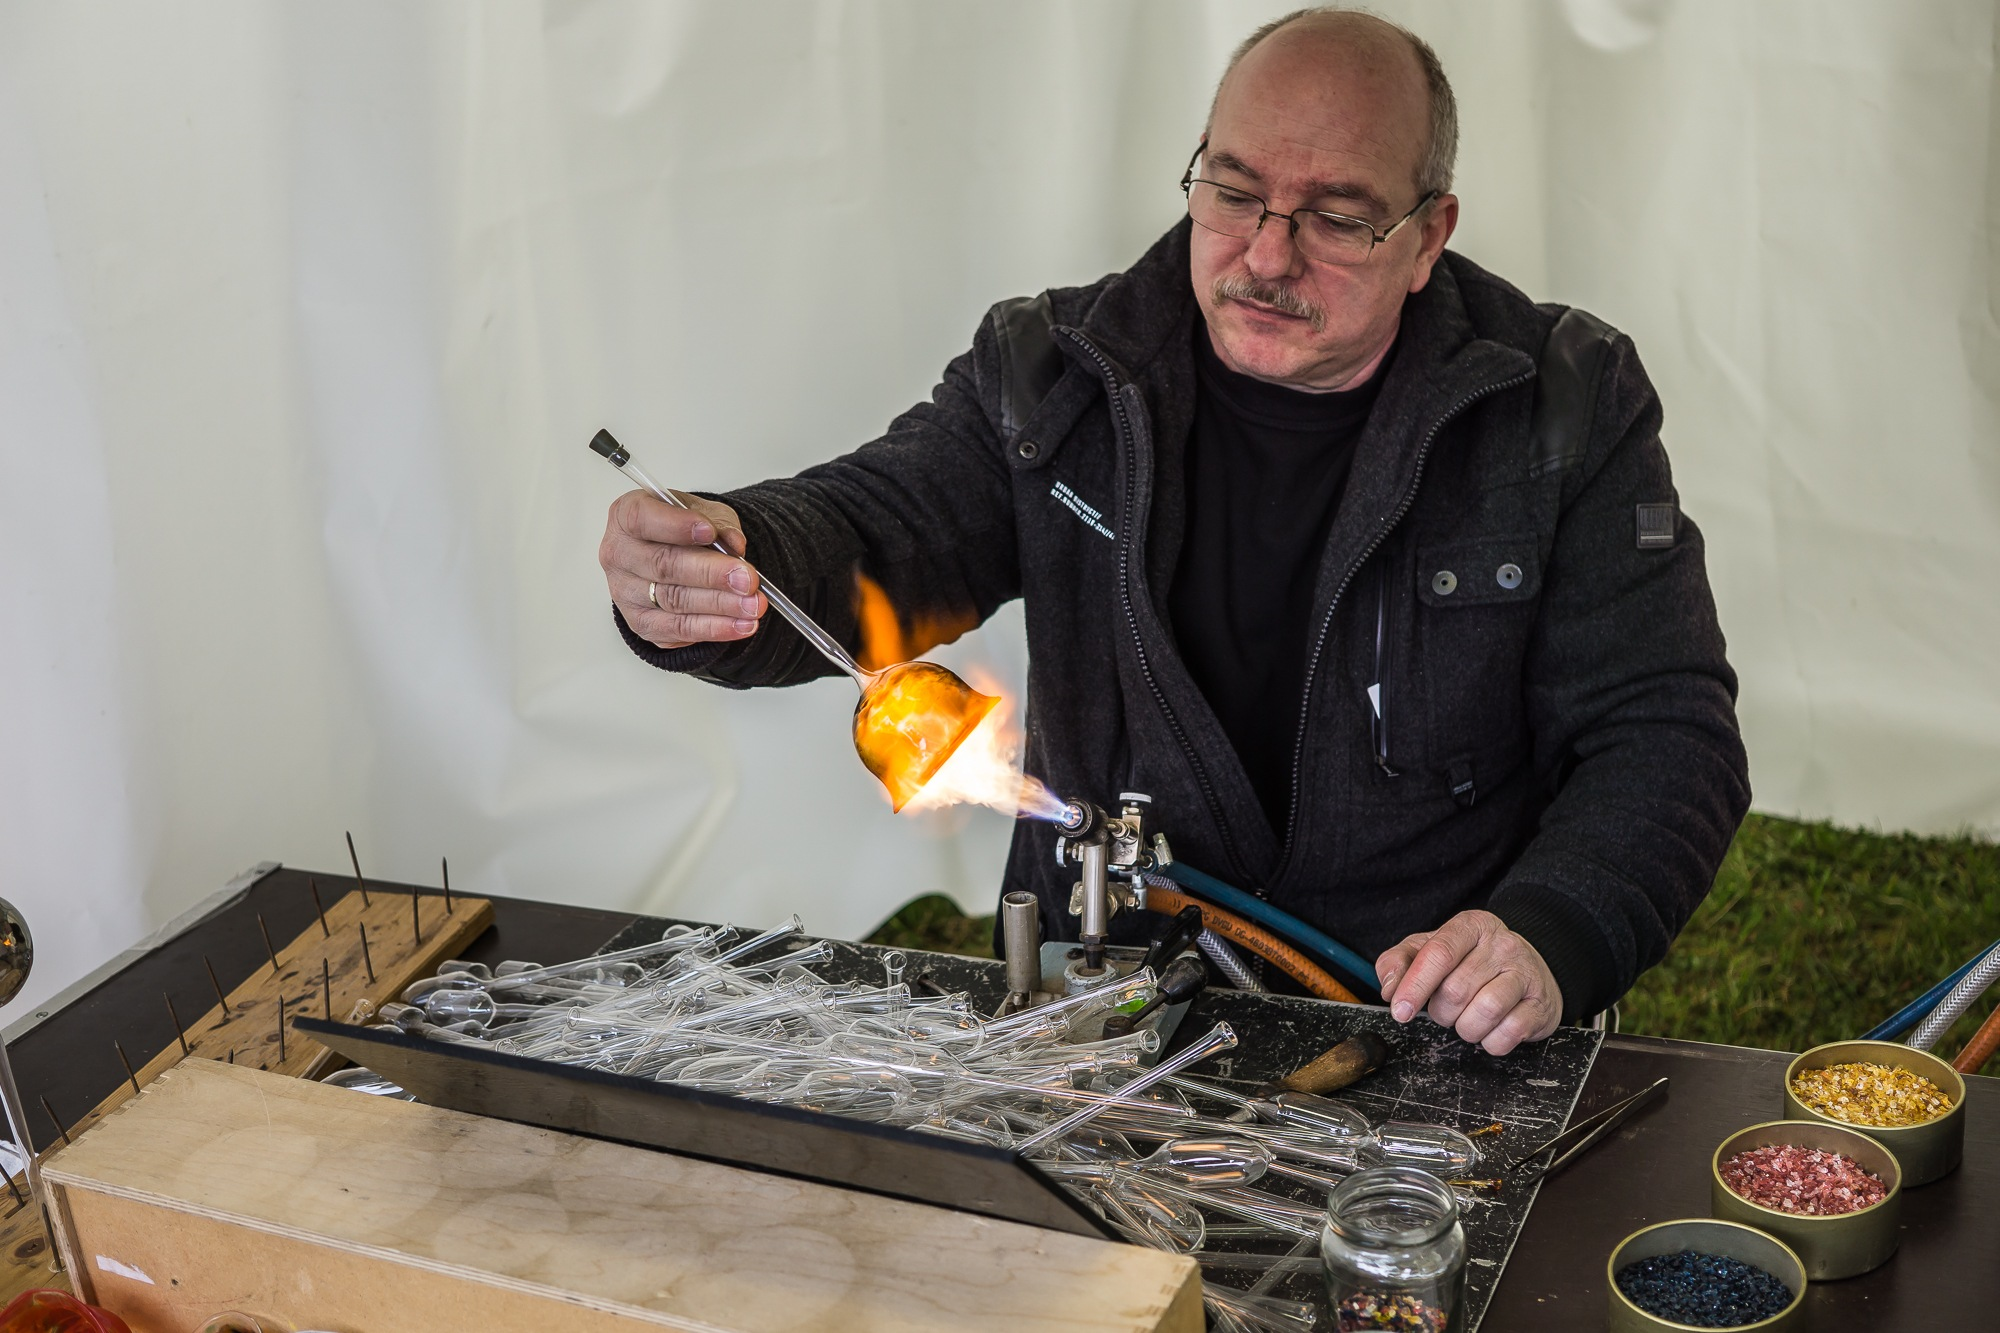 Glassblower at work by Peter Buck